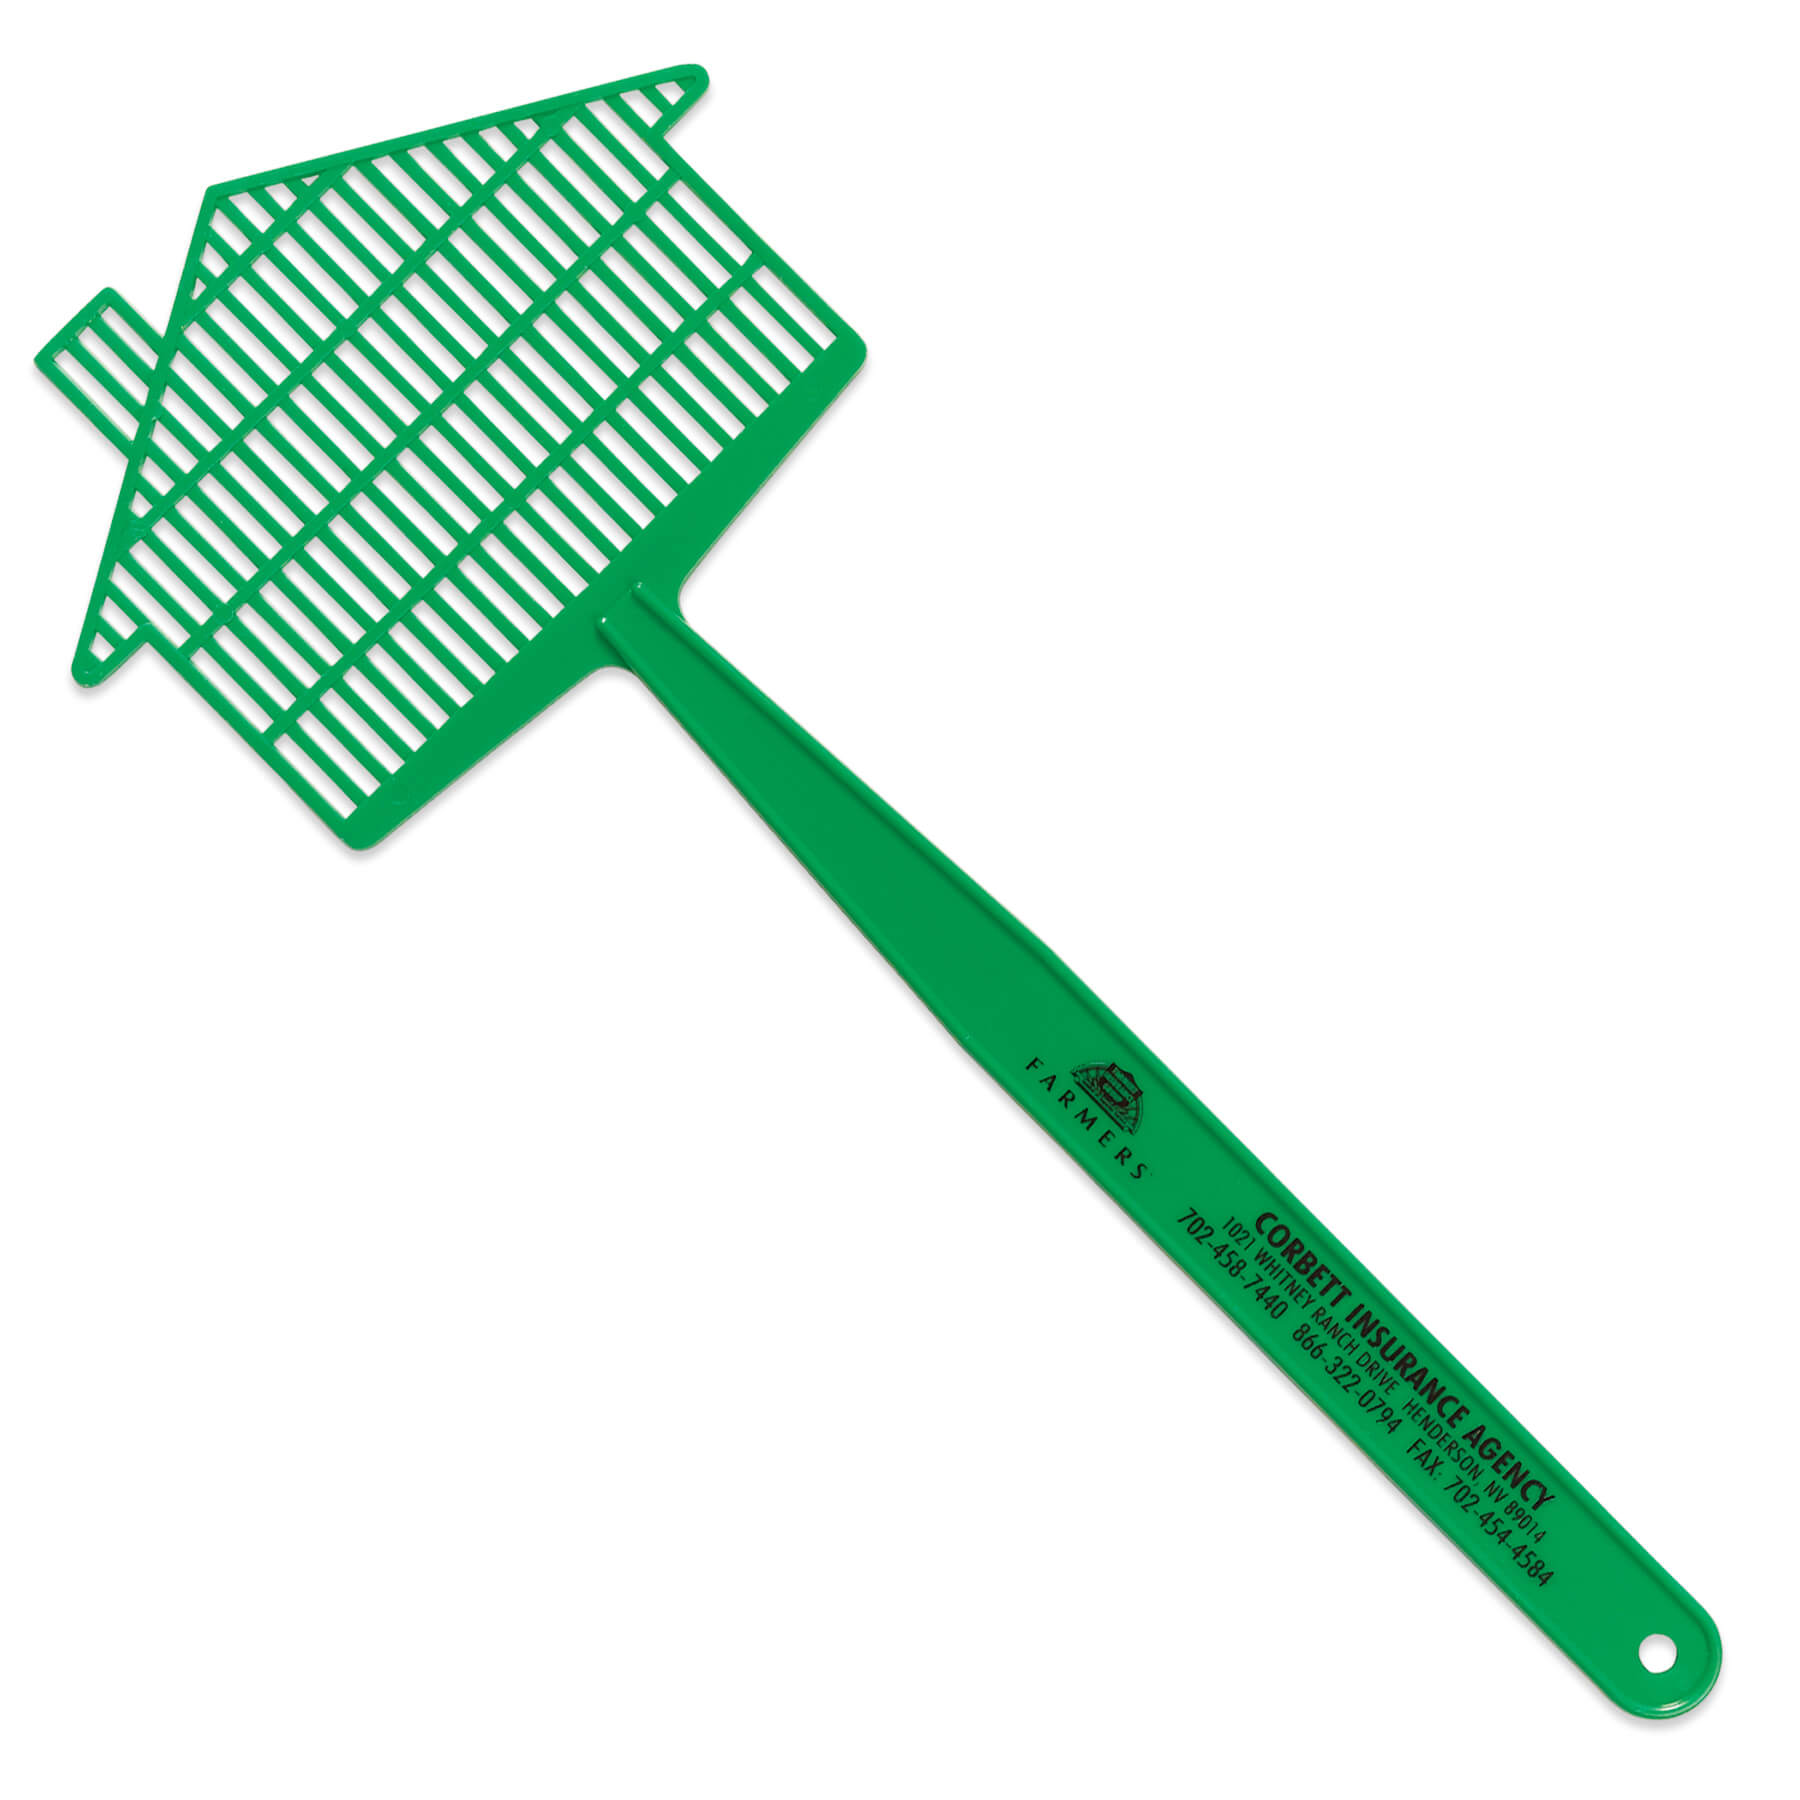 Item: Mi1033 - Medium House Fly Swatter